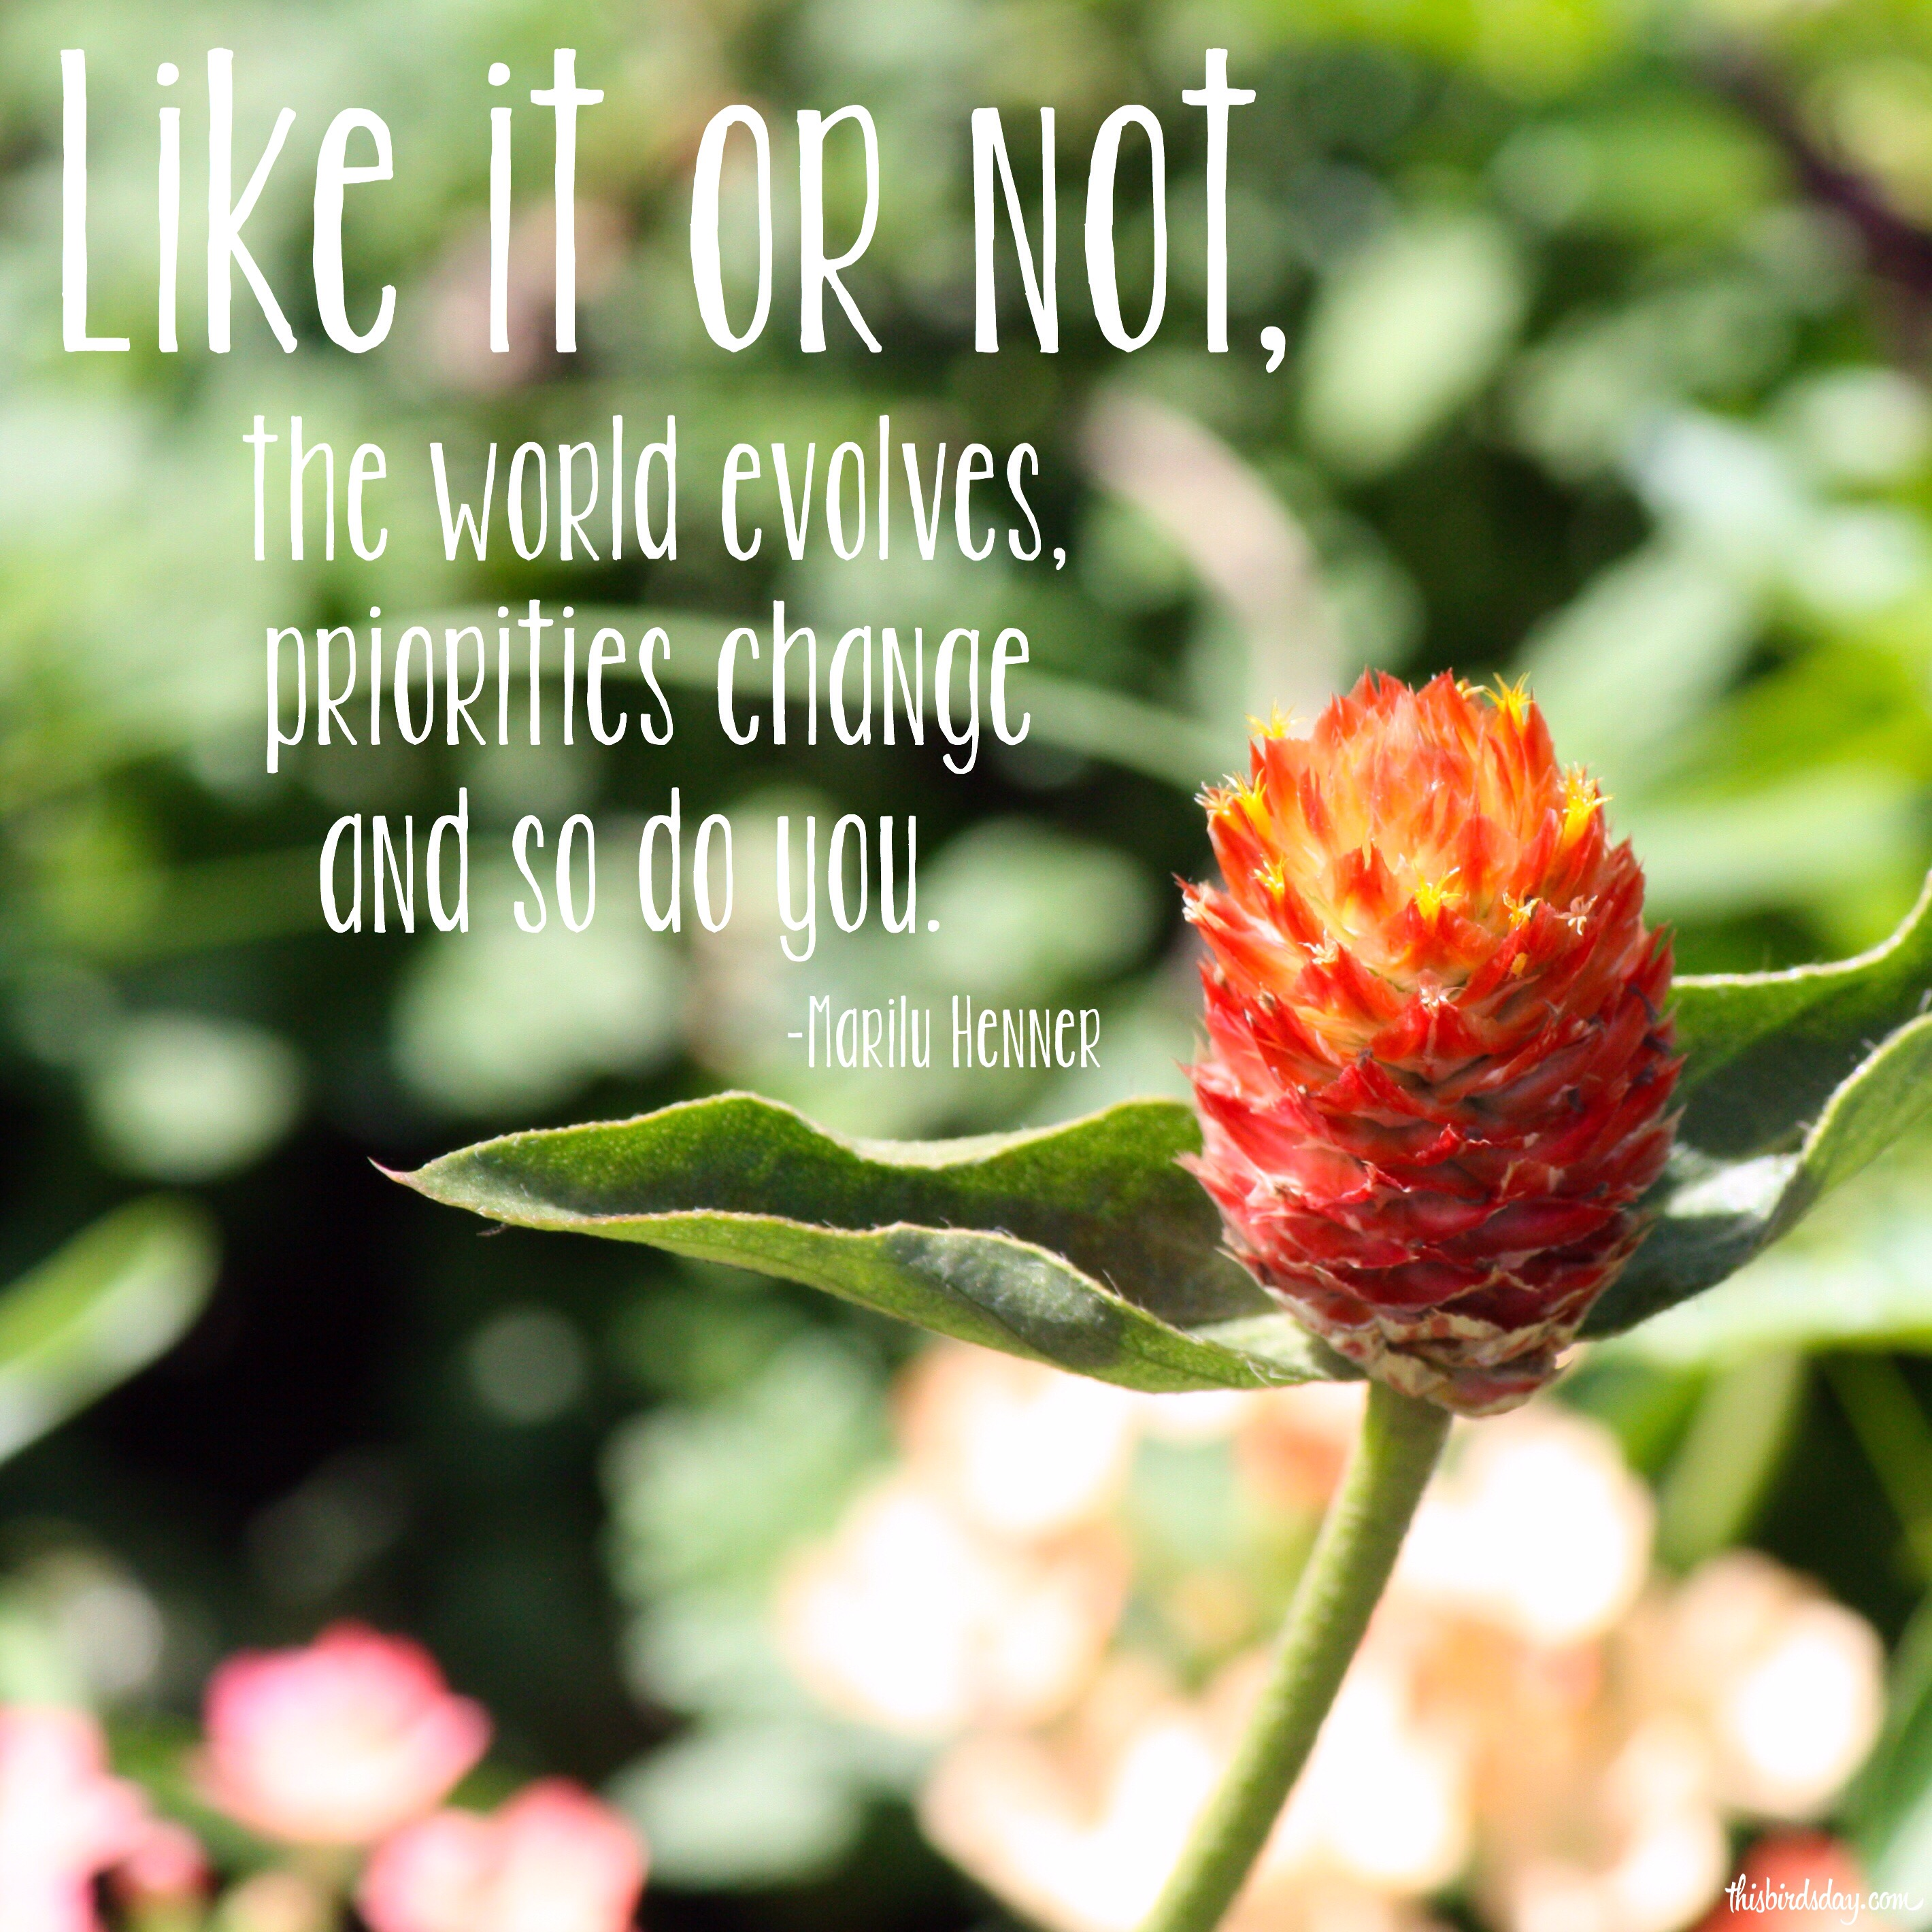 """""""Like it or not, the world evolves, priorities change and so do you."""" Marilu Henner Photo copyright Sheri Landry"""